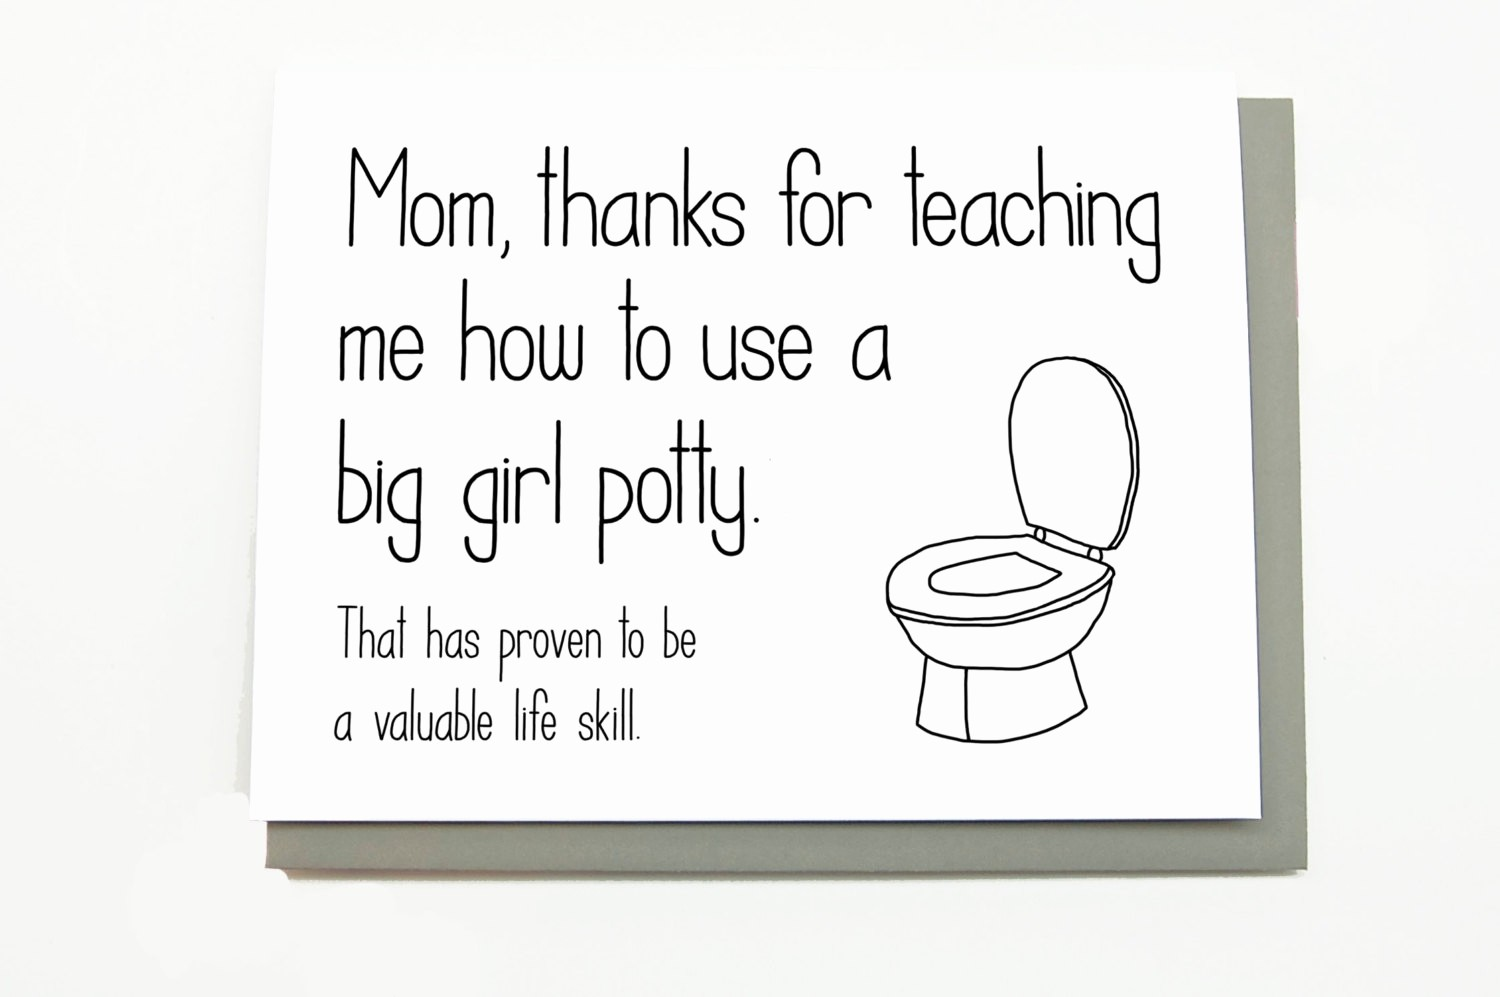 mom birthday card sayings from daughter ; birthday-quotes-for-daughter-in-law-new-mom-birthday-card-sayings-from-daughter-lovely-best-25-happy-of-birthday-quotes-for-daughter-in-law